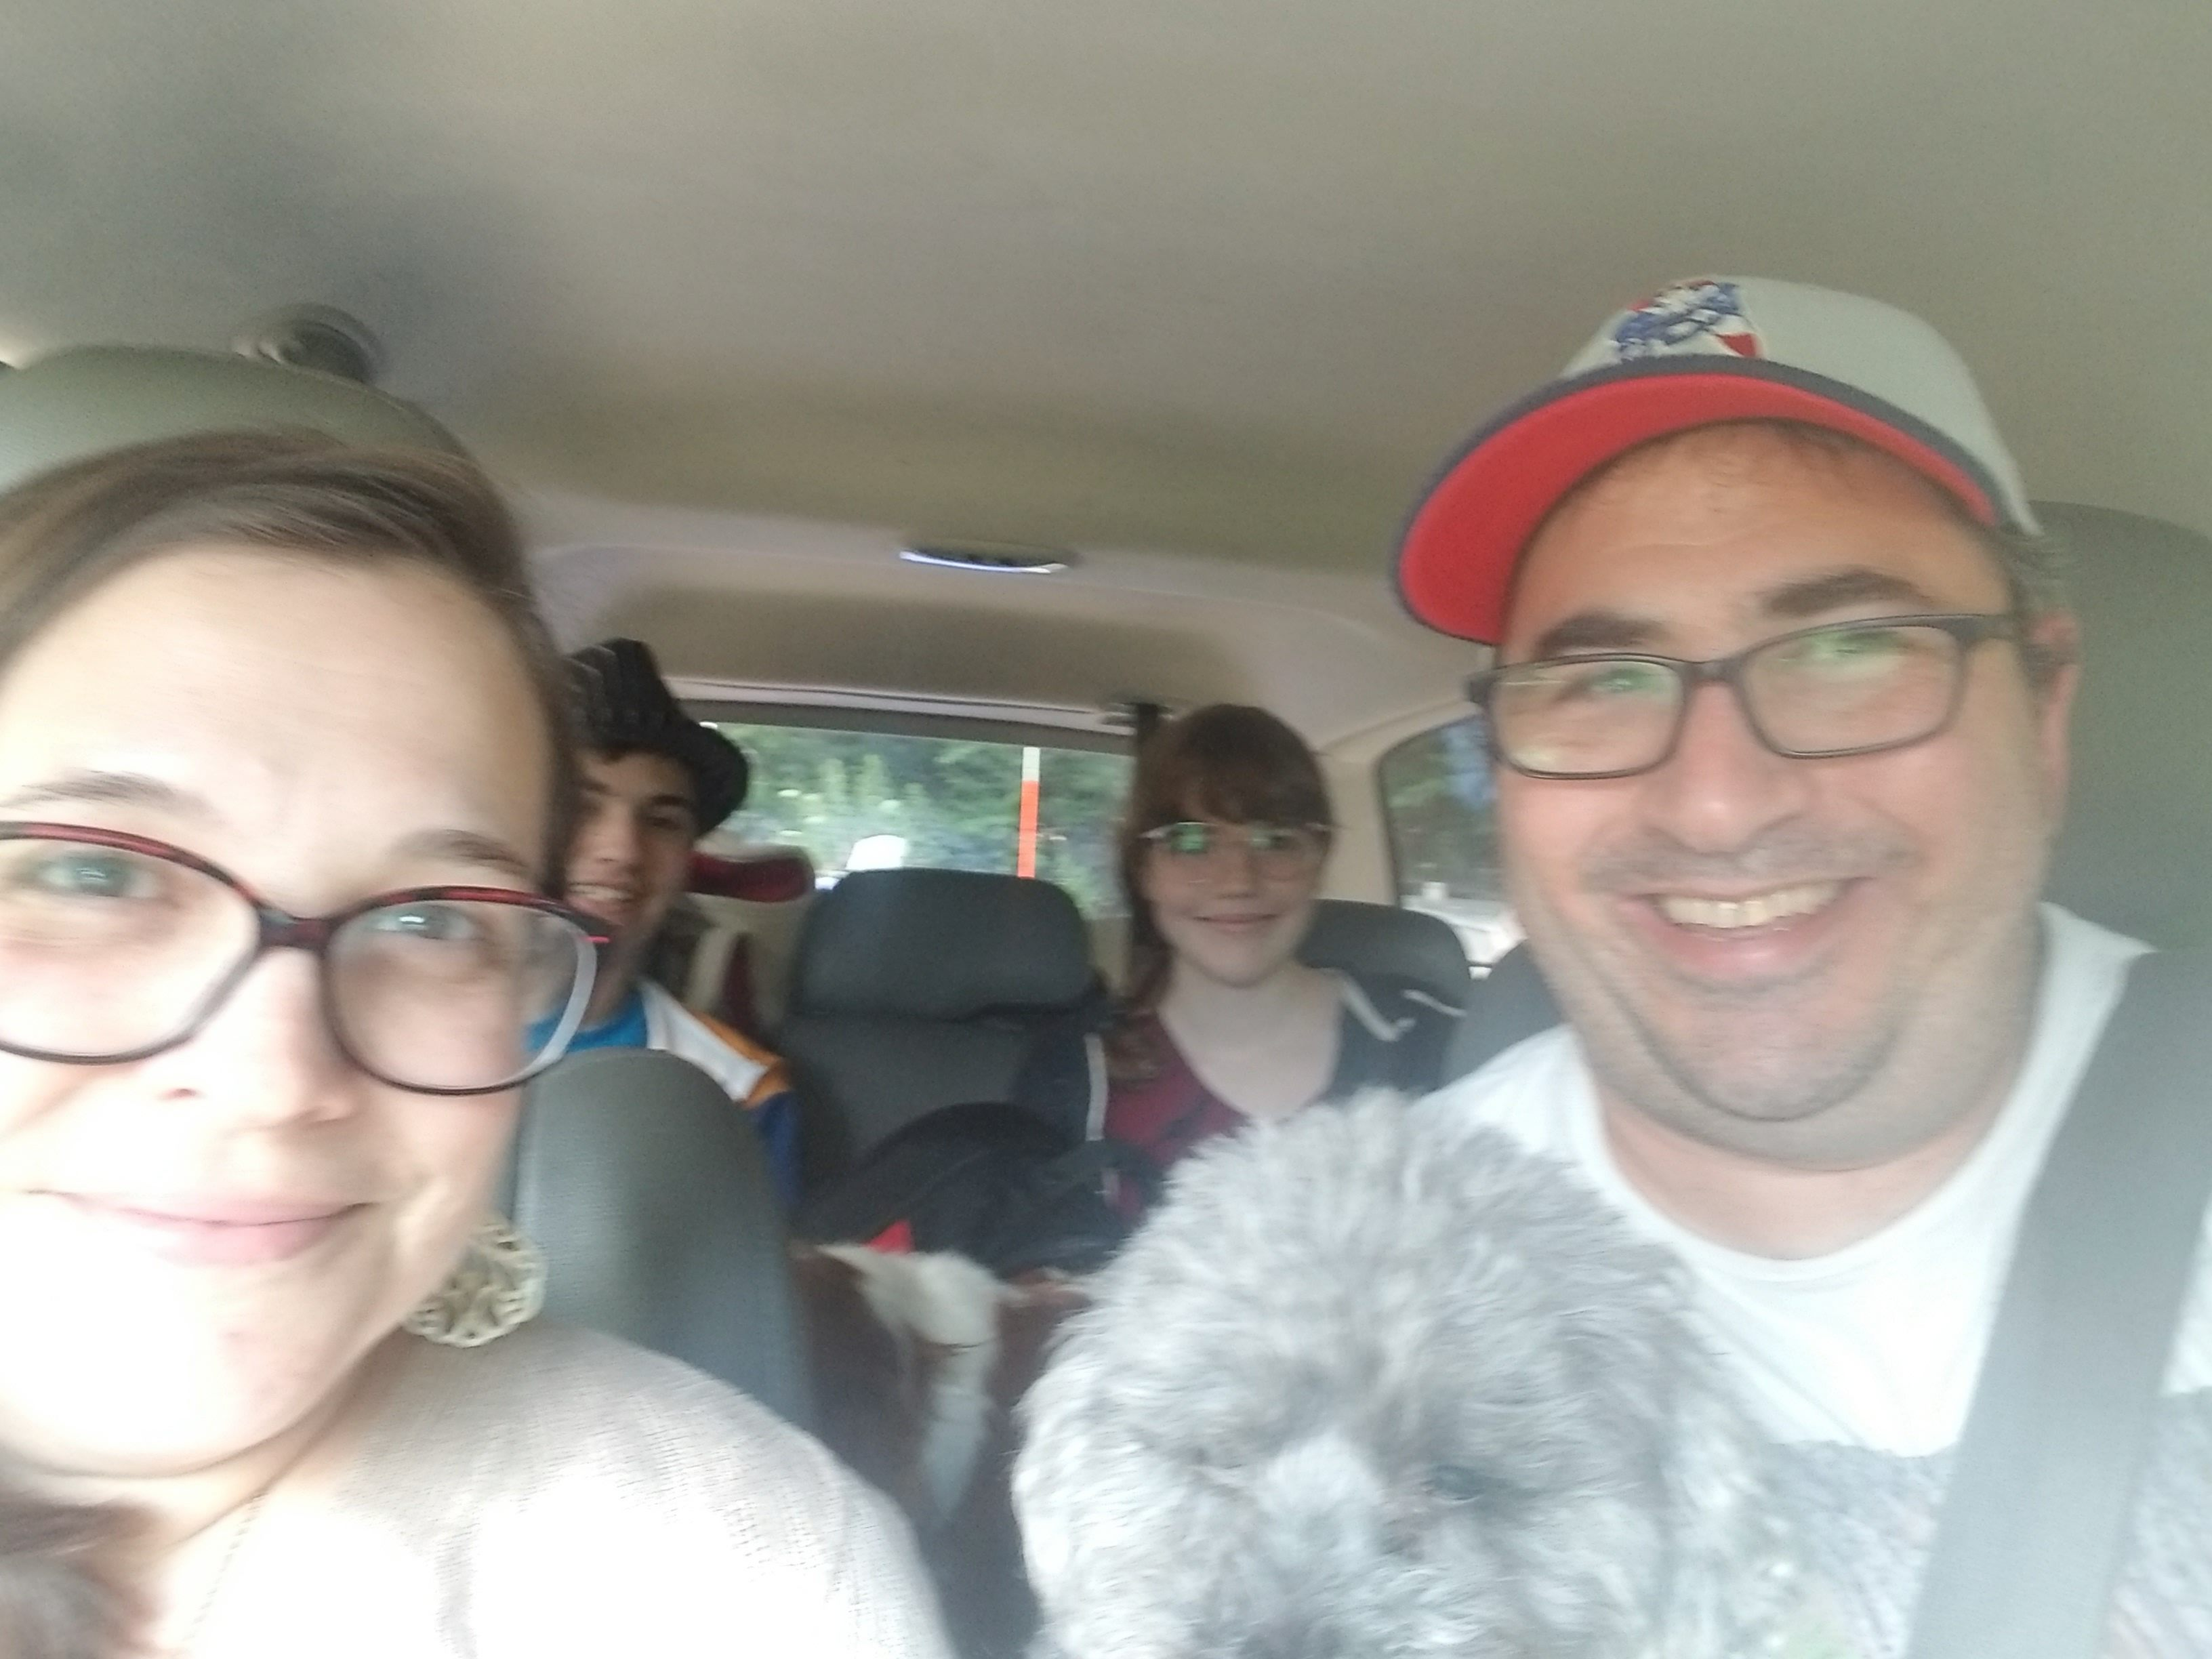 On our way to camp - a six+ hour drive!